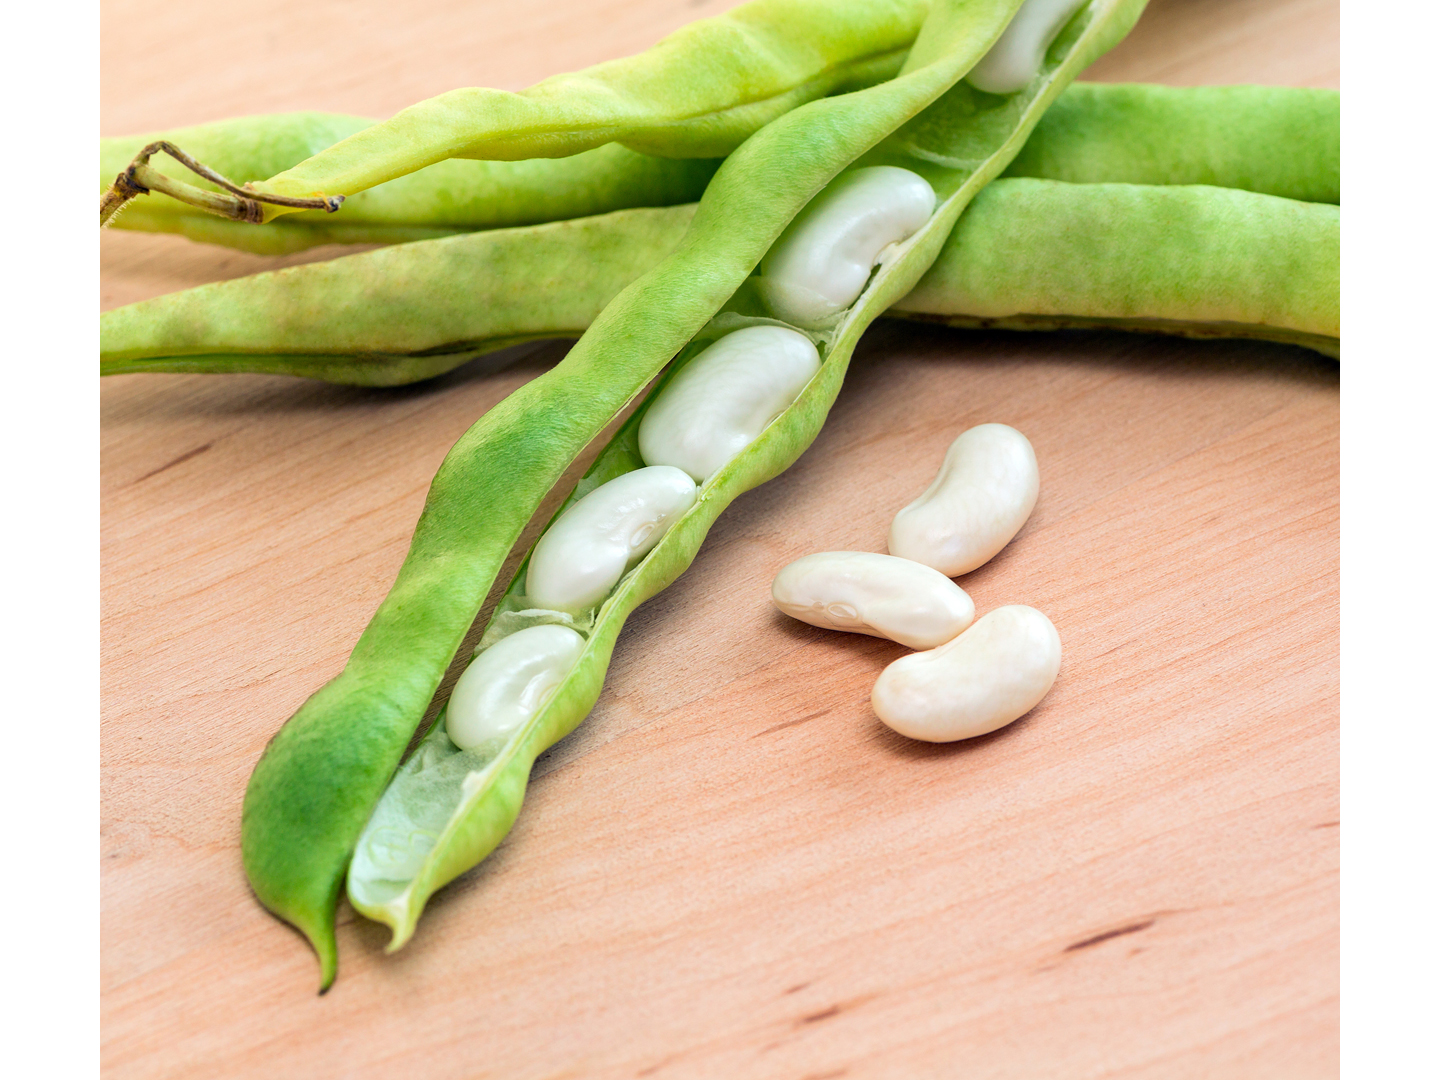 Cooking with legumes lima beans dr weil 39 s healthy kitchen for How to cook fresh lima beans from garden